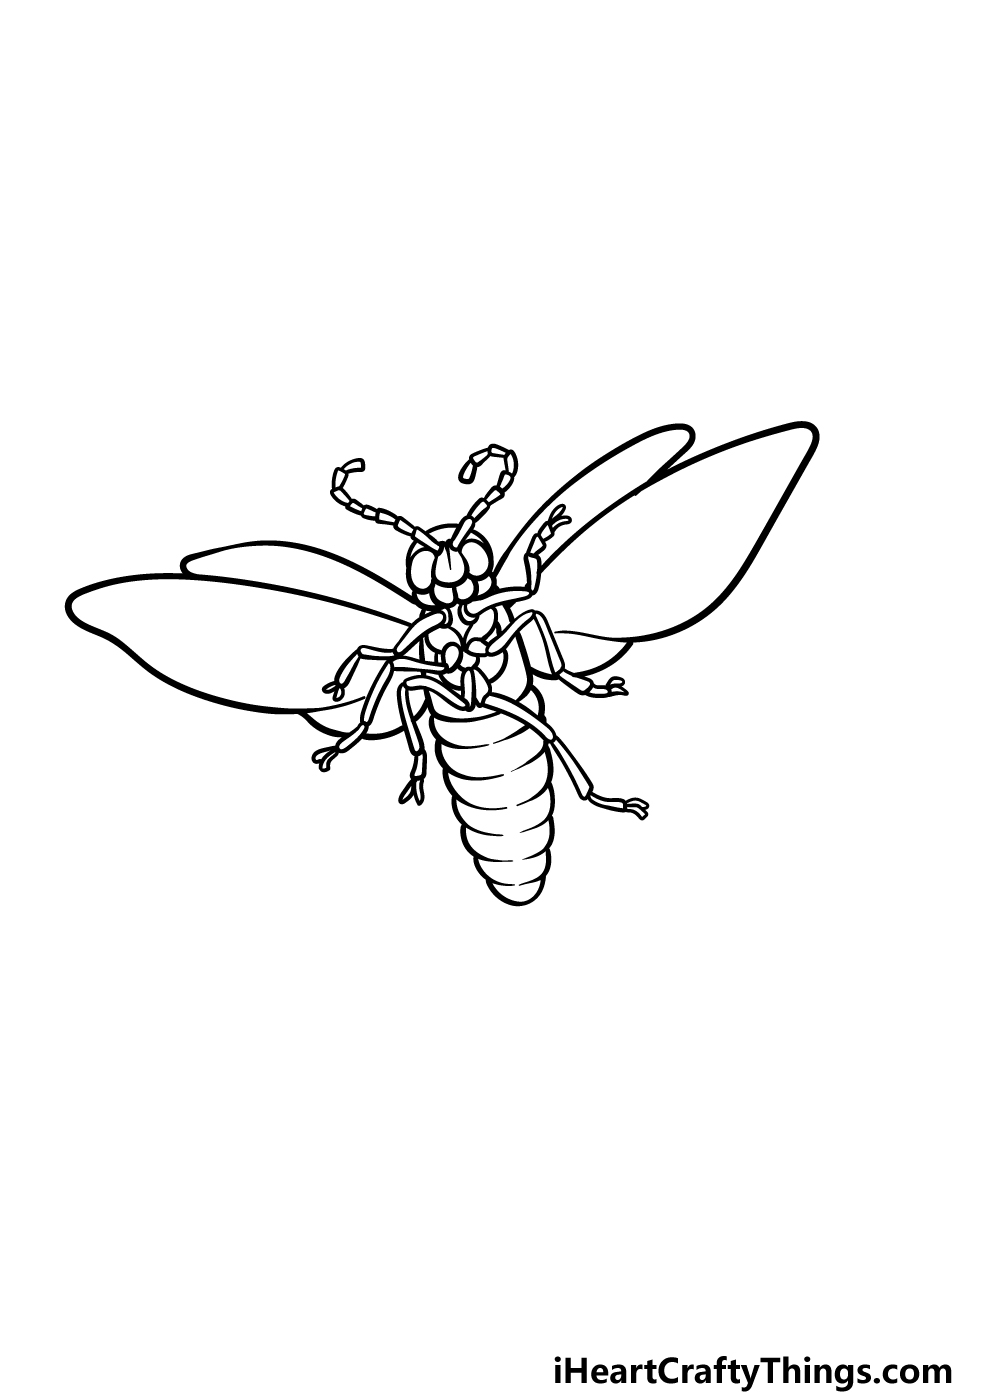 drawing a firefly step 4